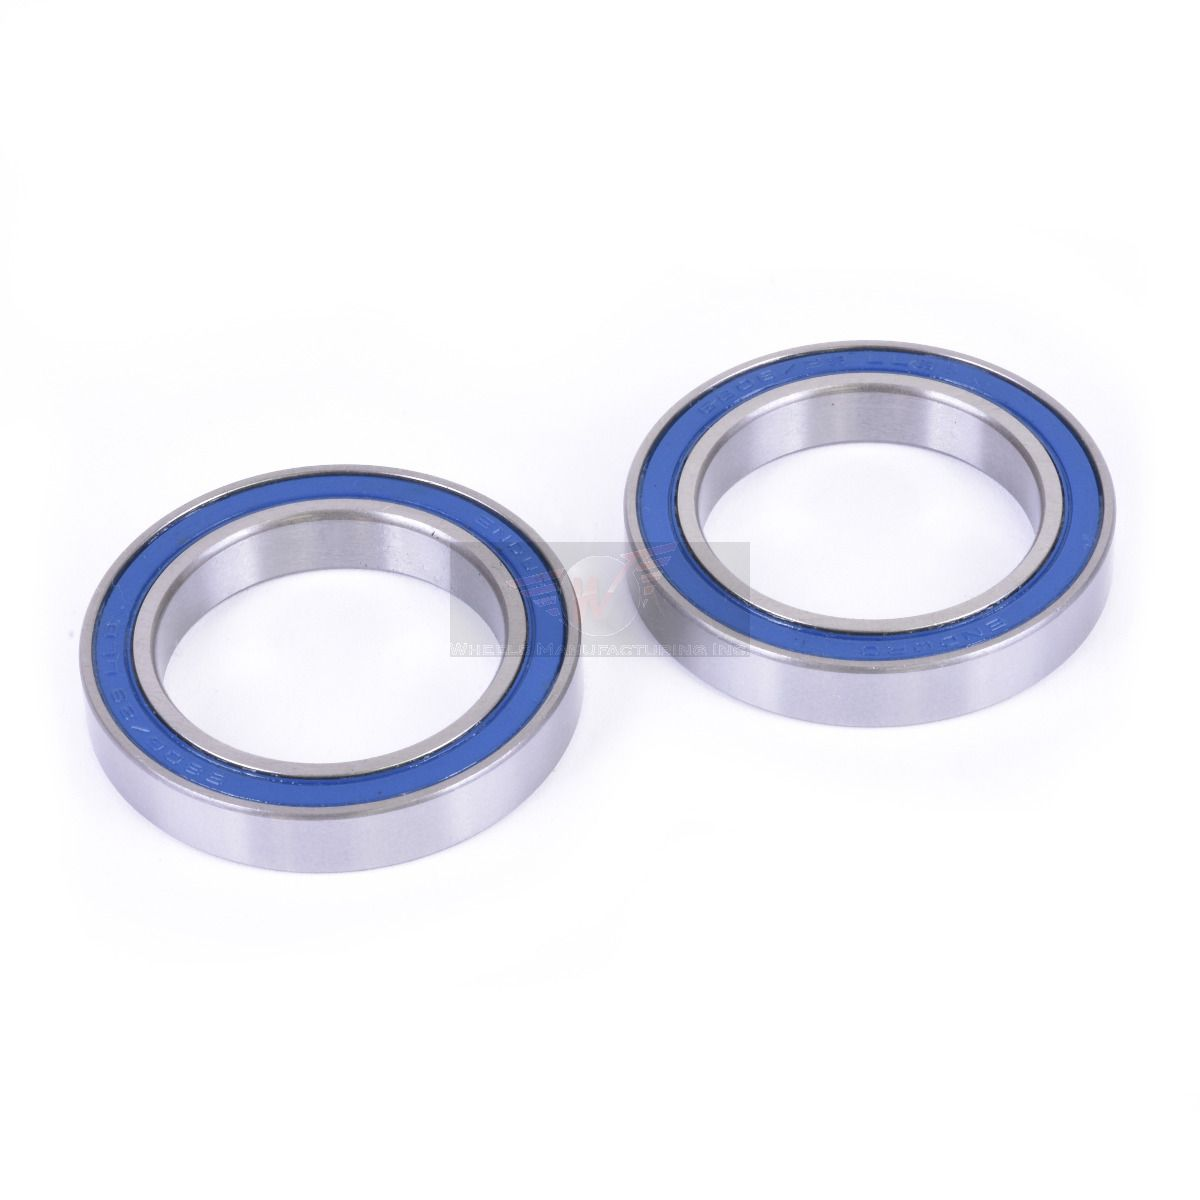 6806/29 (DUB) ABEC-3 Sealed Bearing